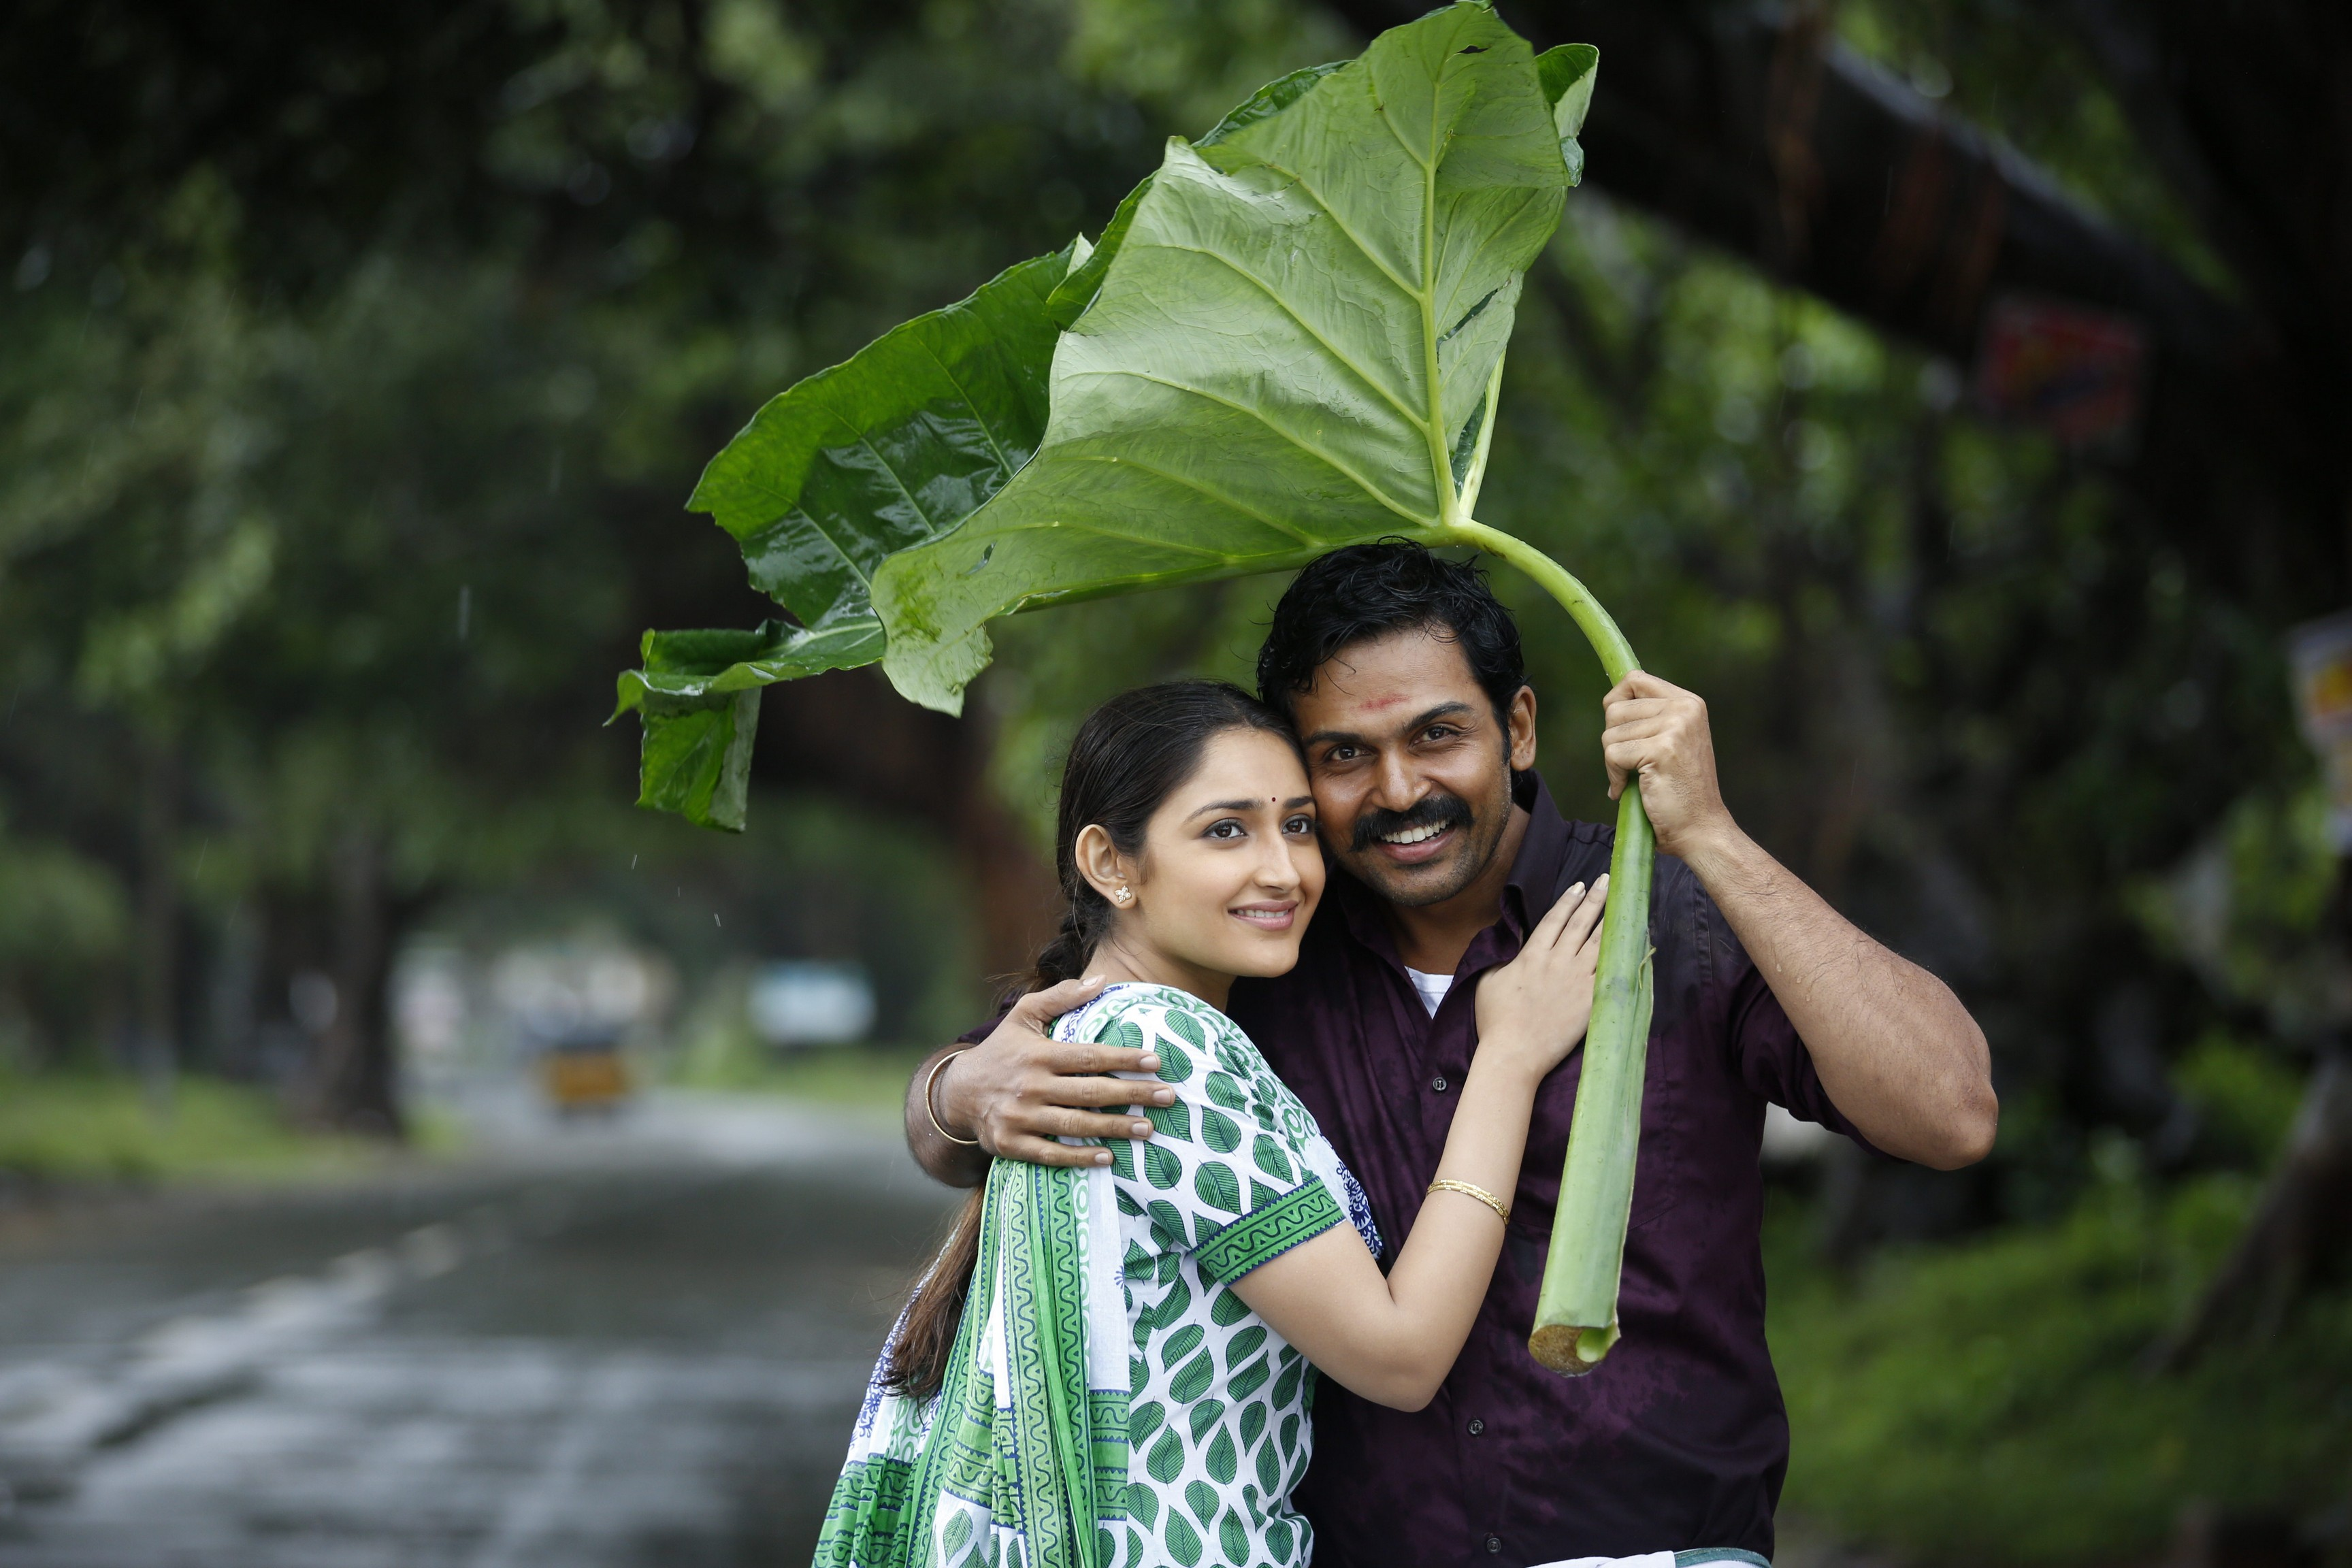 kadai kutty singham karthi stills 8 kadai kutty singam Movie Stills